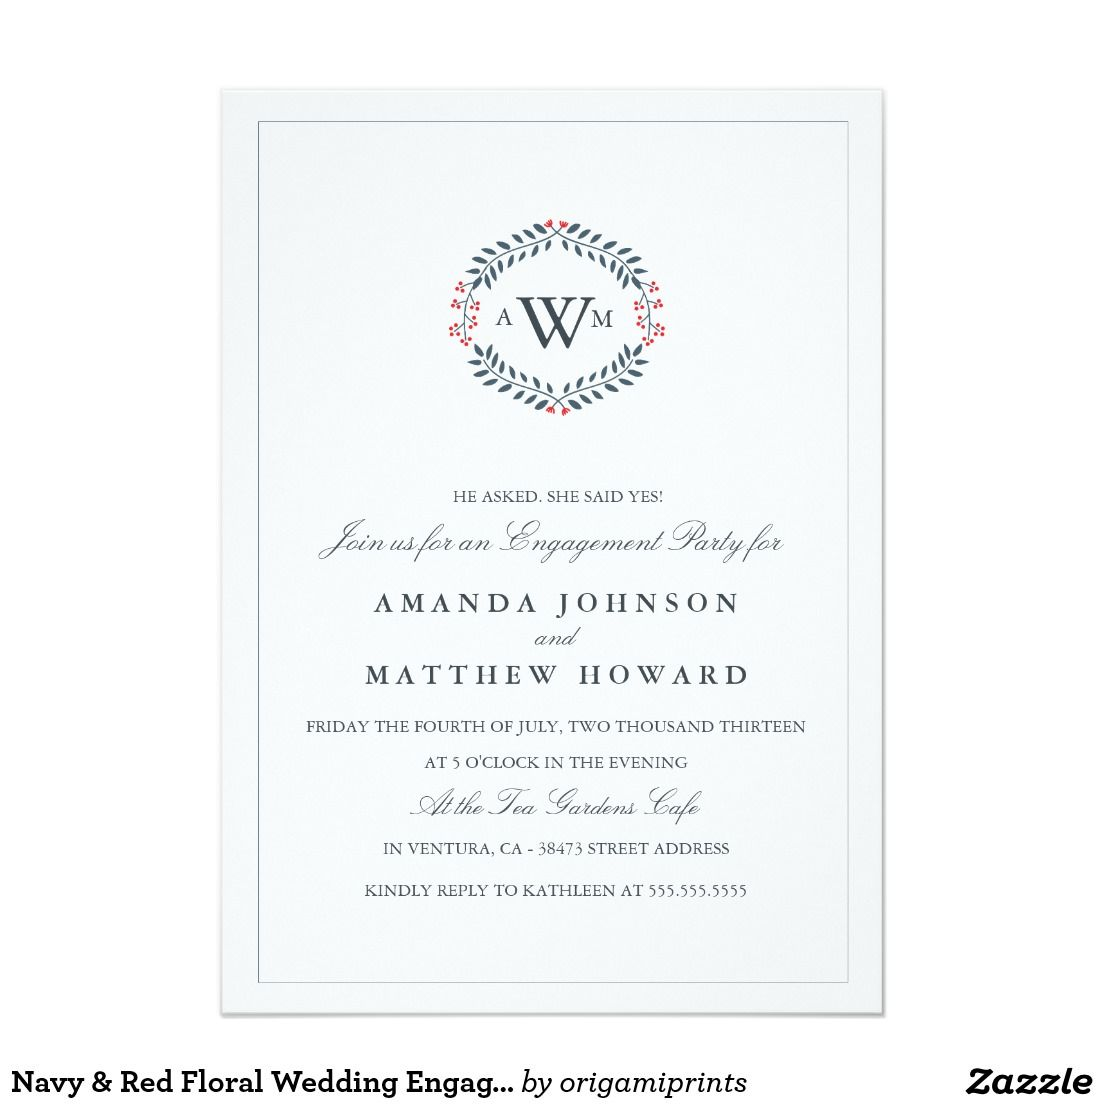 Navy & Red Floral Wedding Engagement Party Invite | Wedding ...